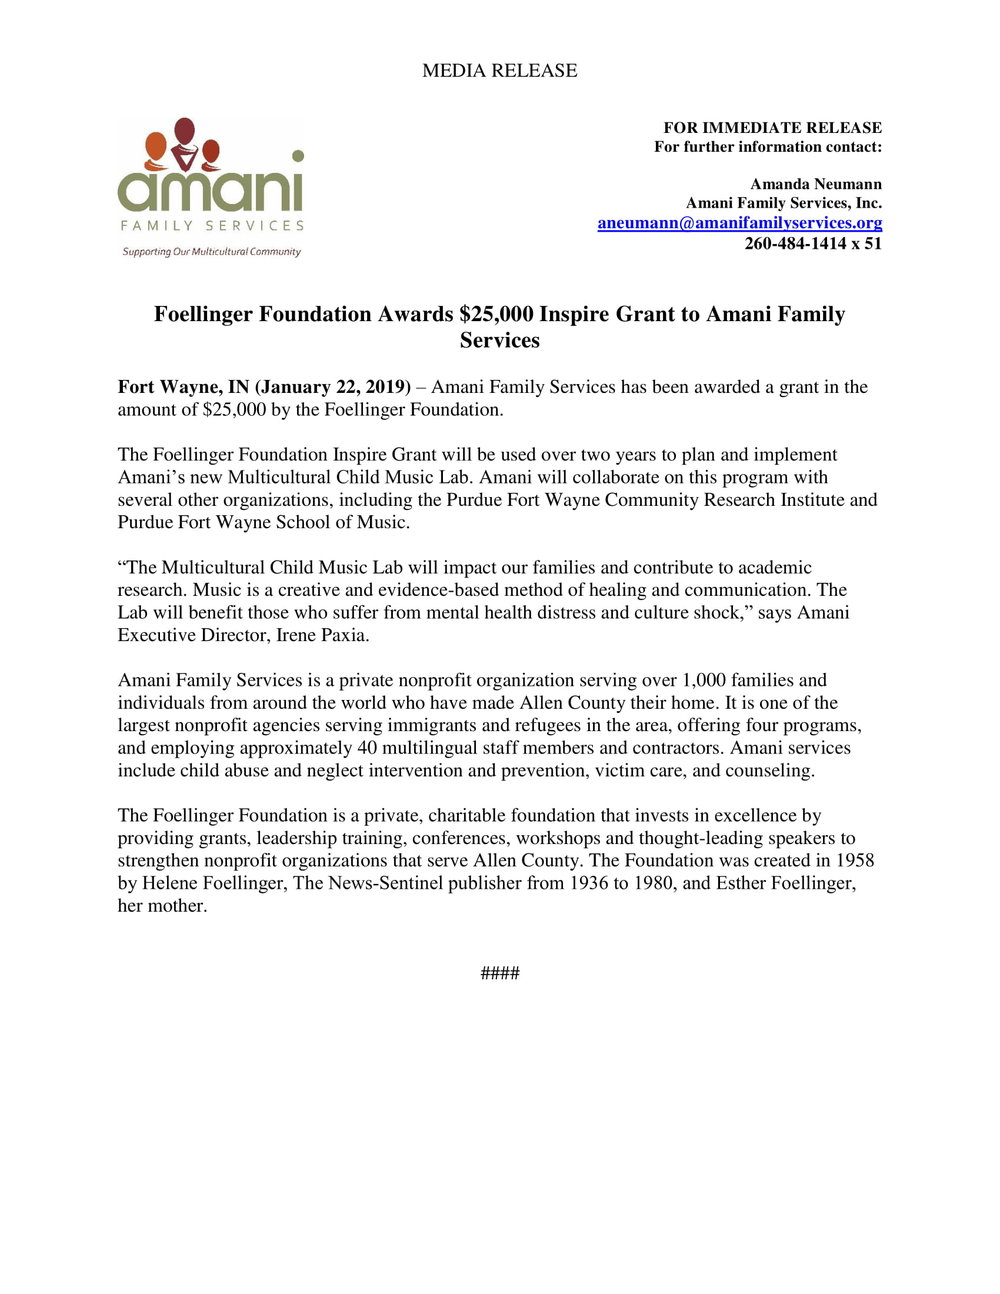 Foellinger 2019 Inspire Press Release - Amani Family Services-1.jpg